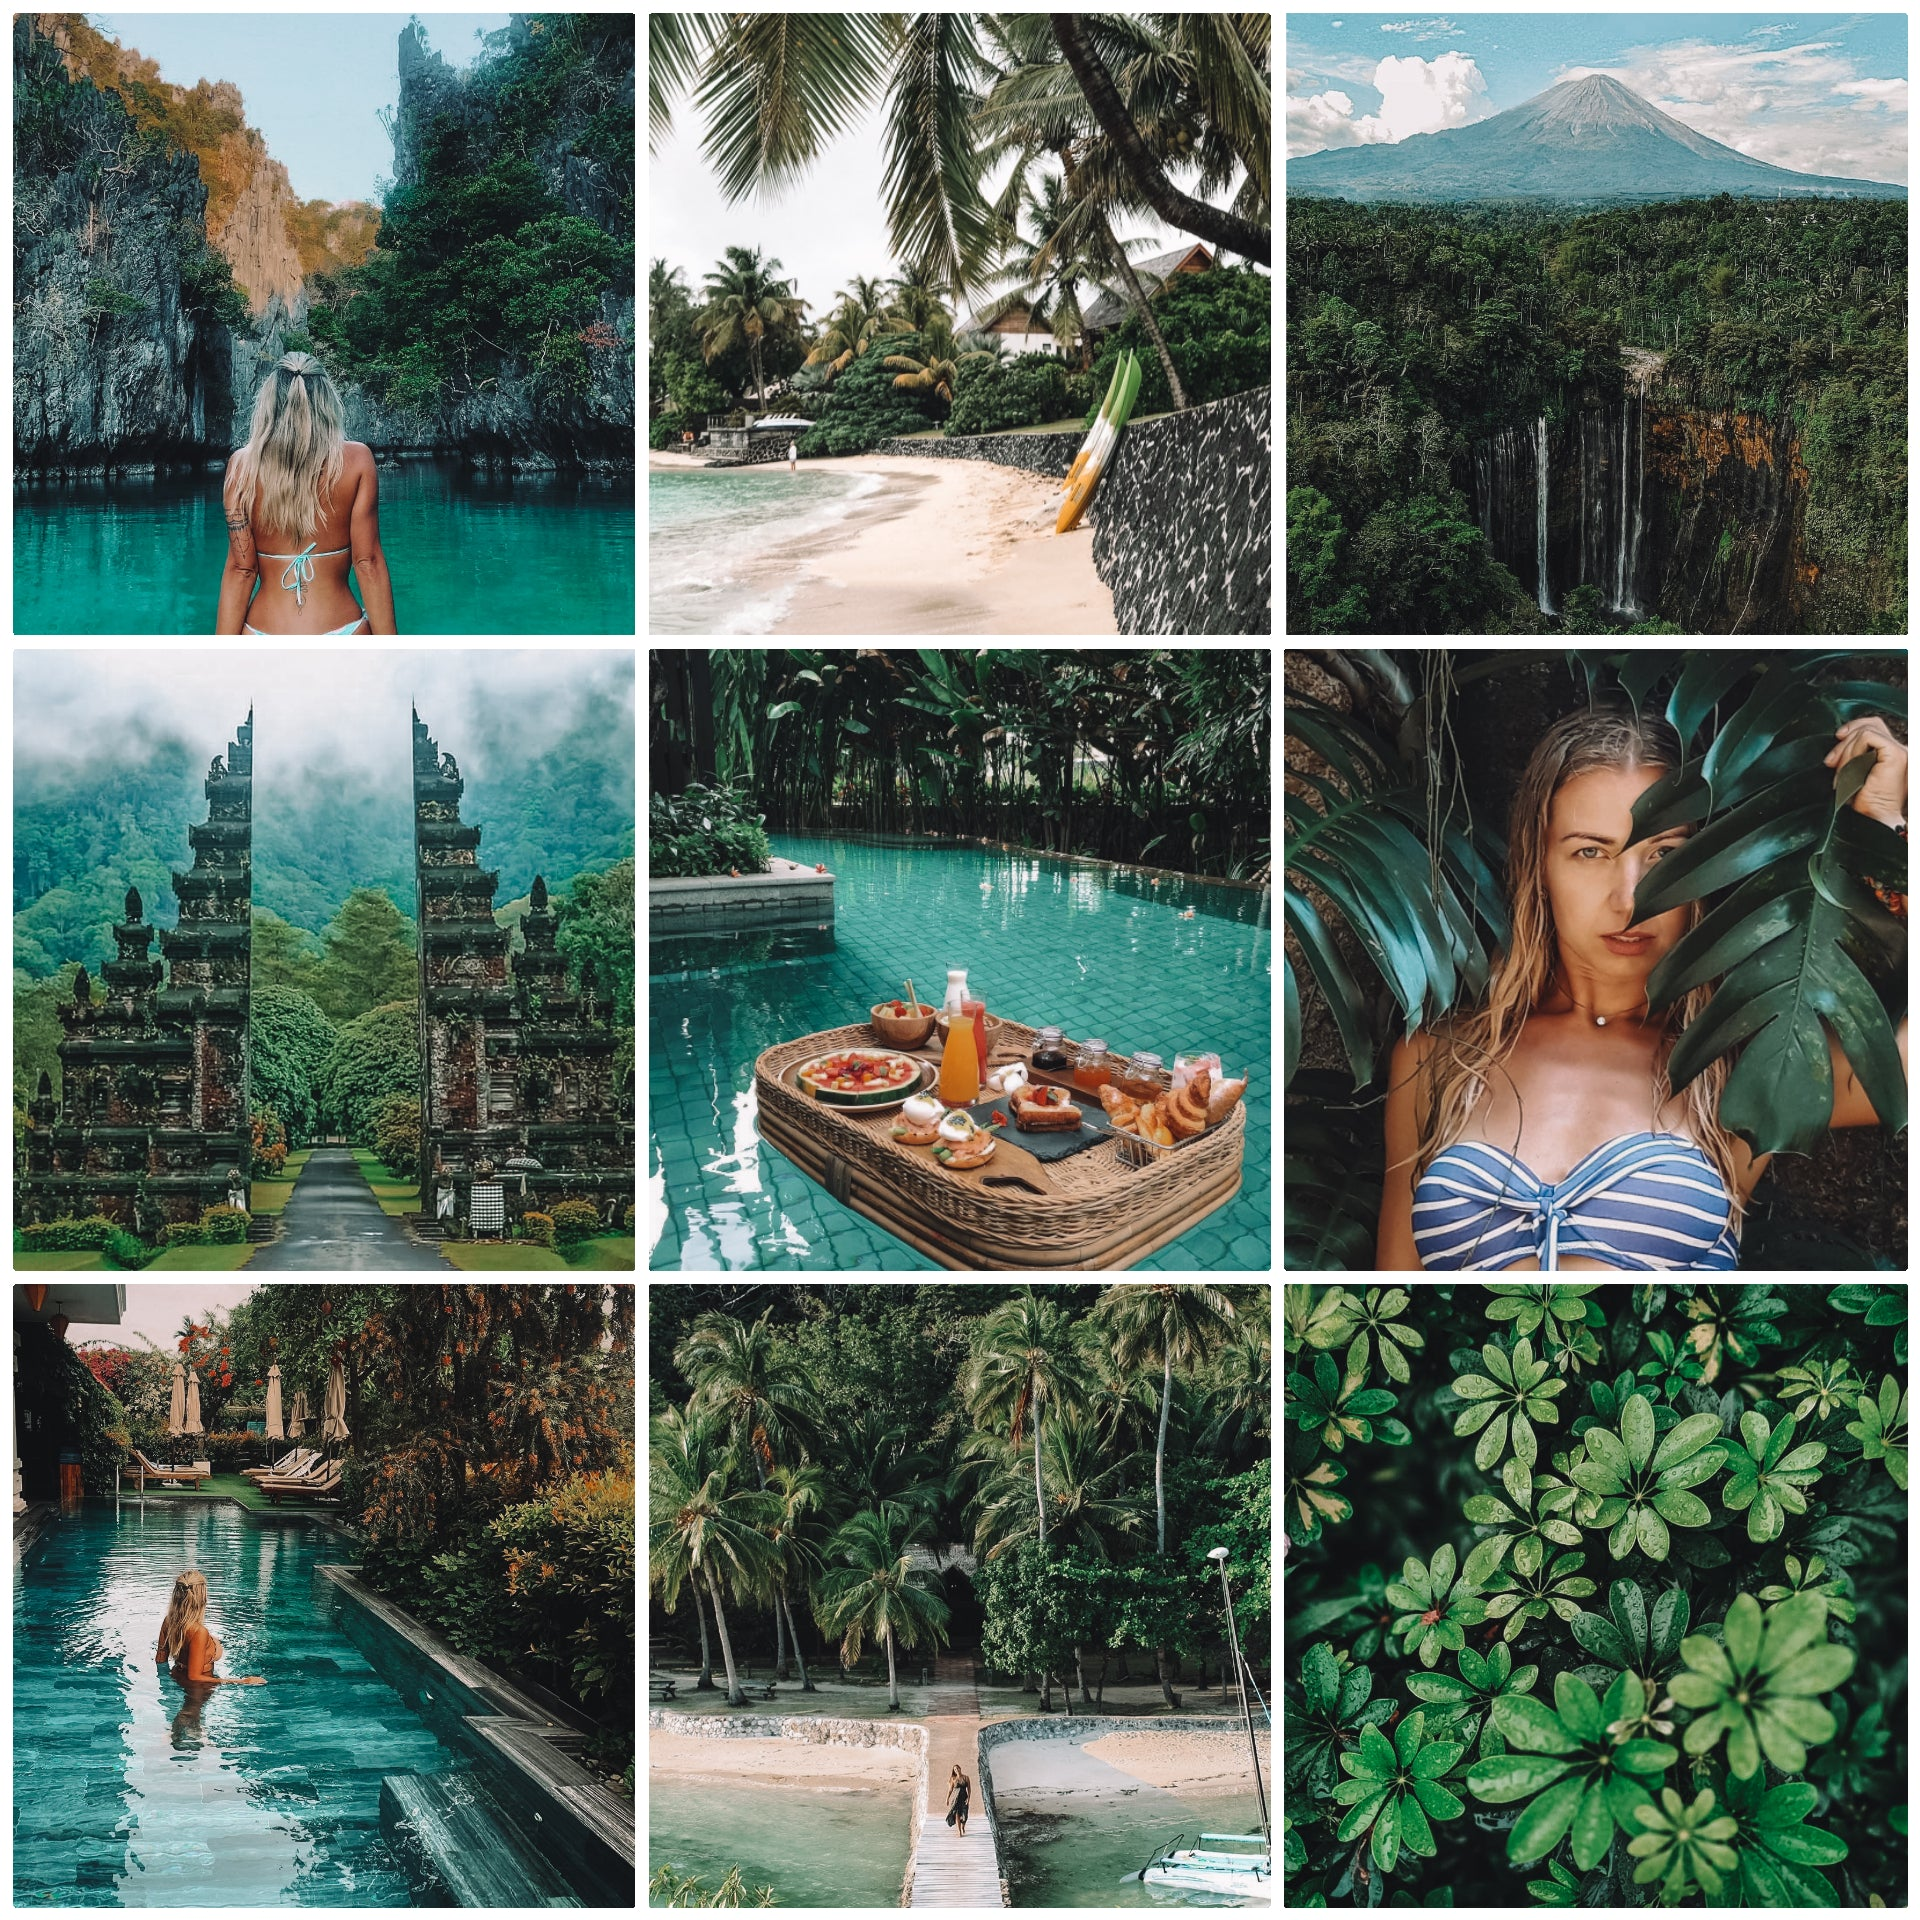 Bali - The Dreamy Photographer. One Click Filter Presets